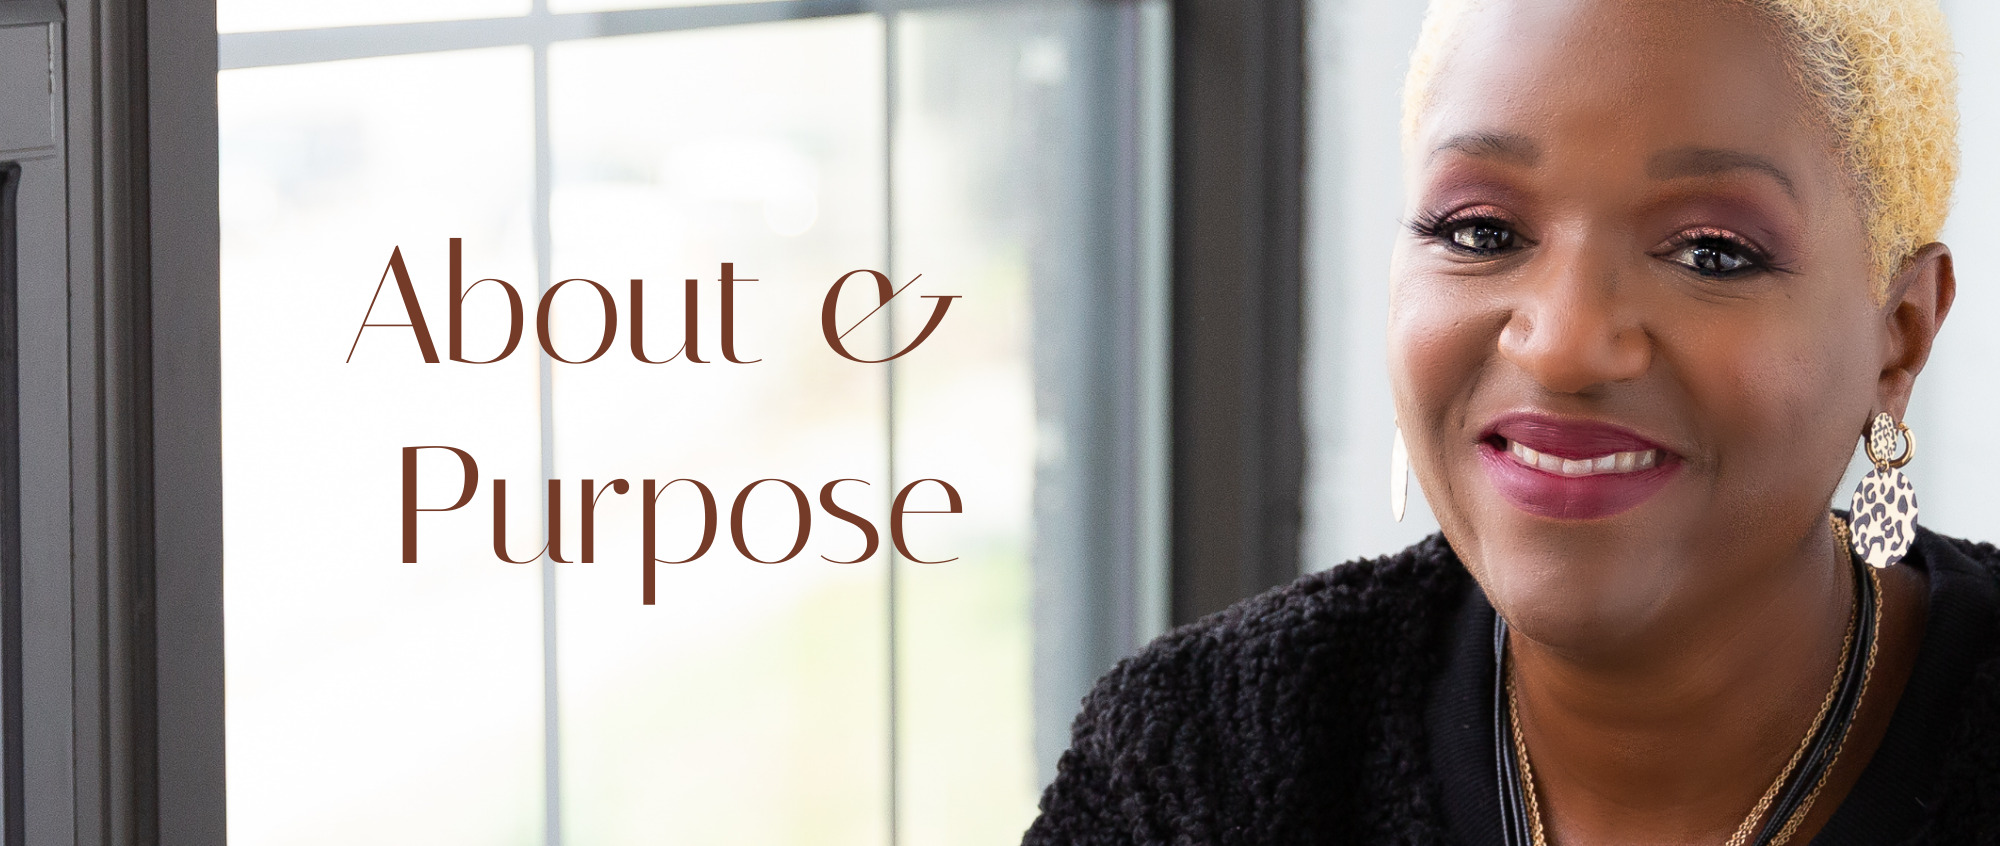 About & Purpose | Sedruola Maruska